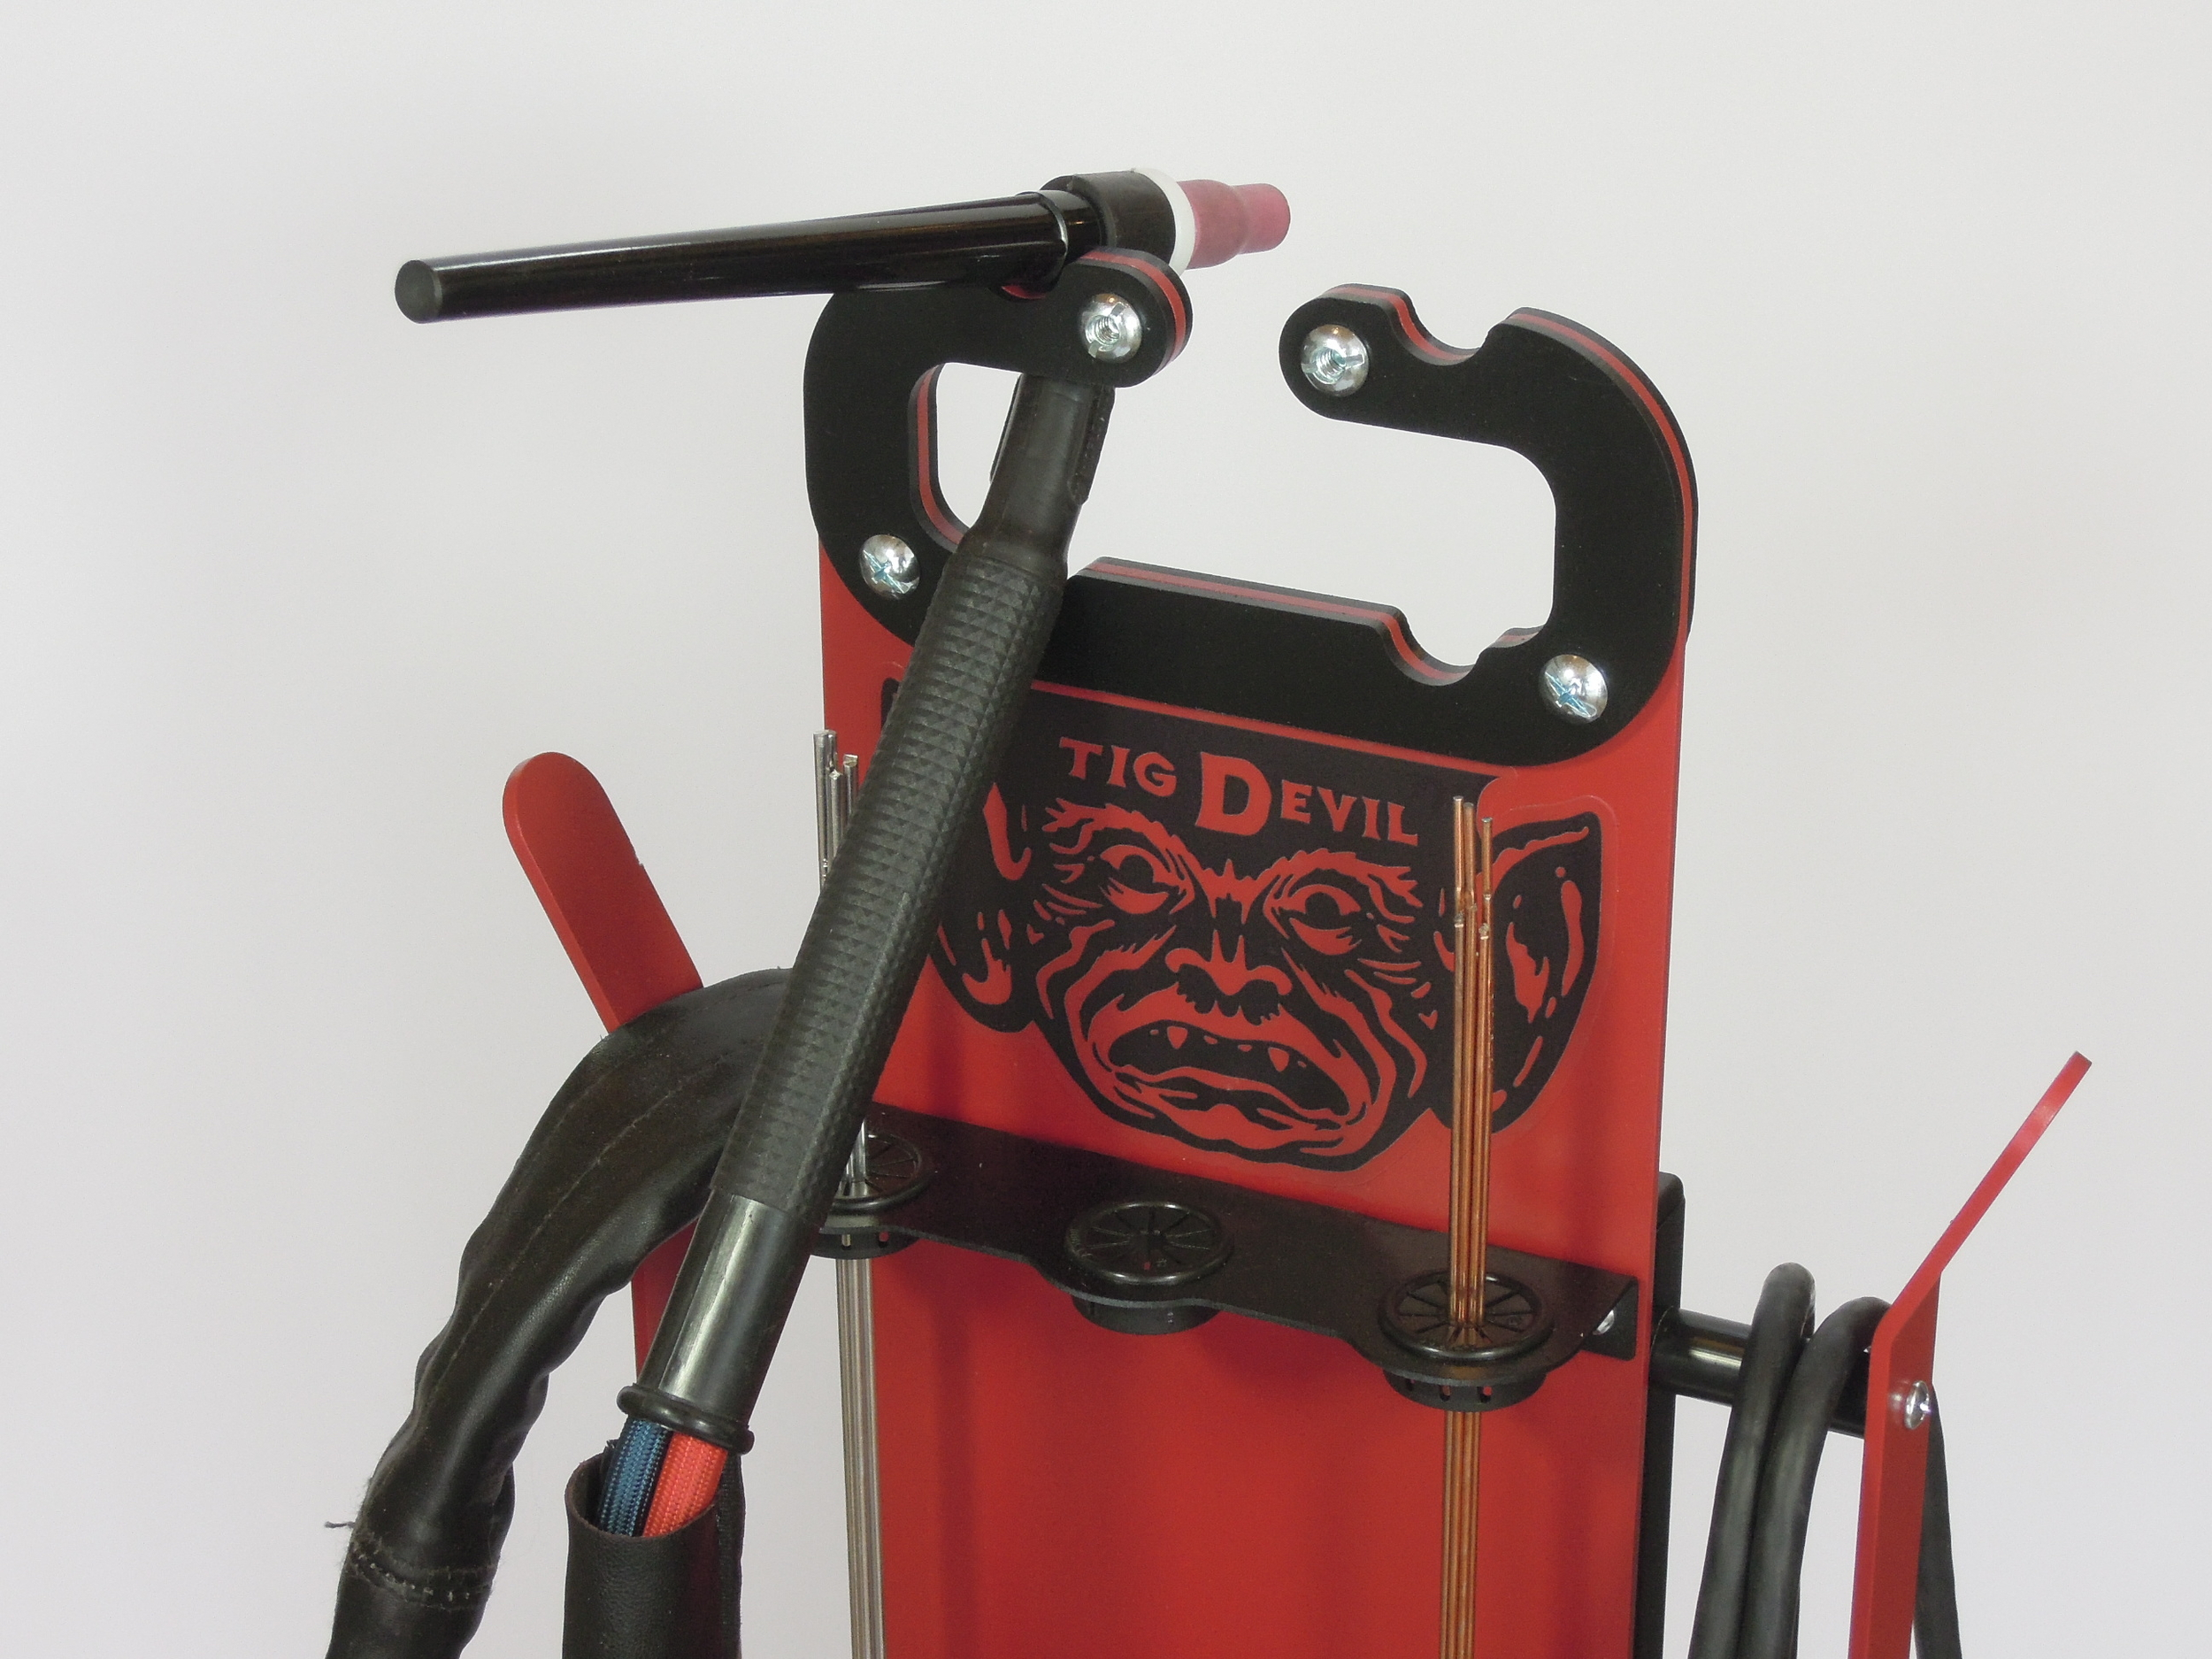 The TIG Devil is a TIG foot pedal caddy and organizer made in Minnesota